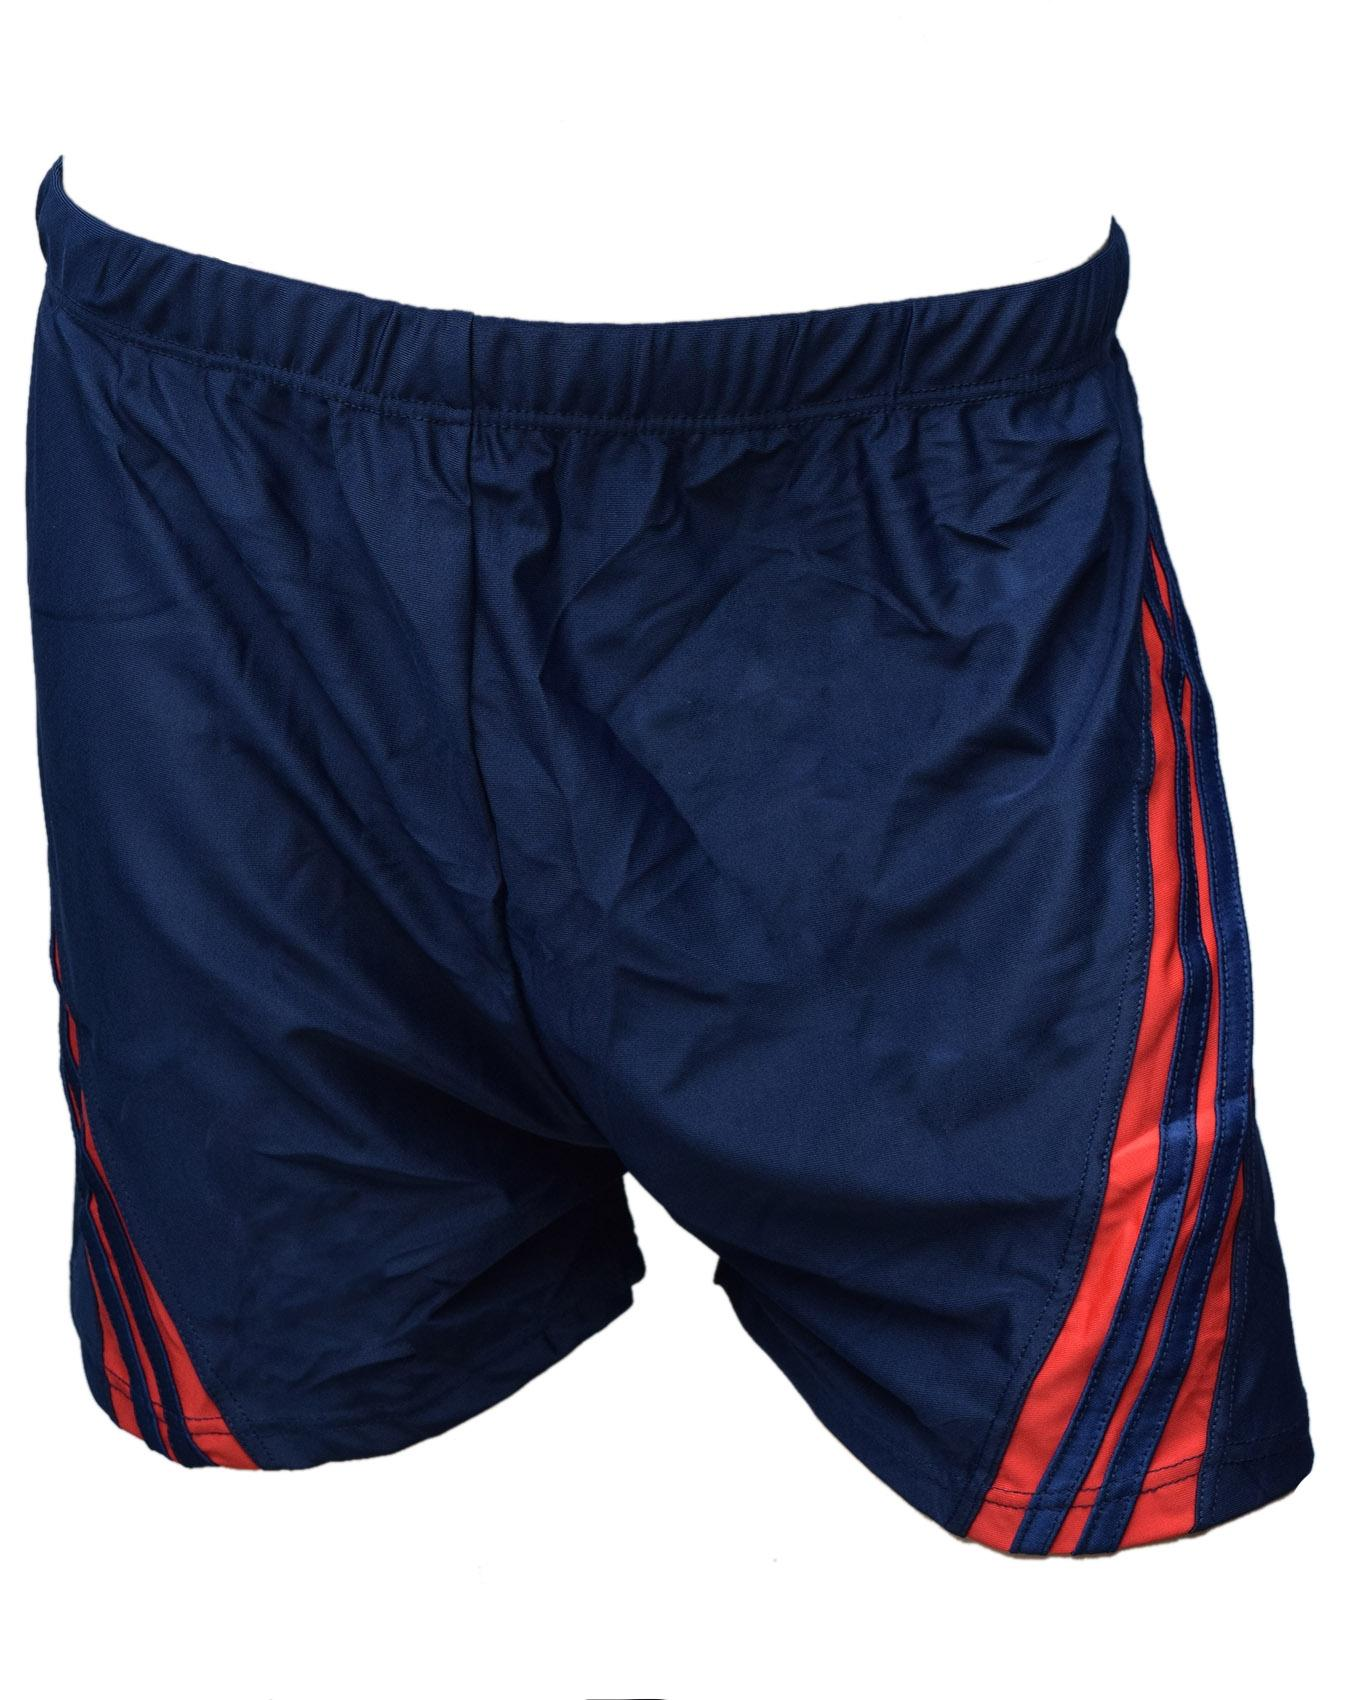 1b75d63589 Men's Swim Trunks - Buy Men's Swim Trunks at Best Price in Srilanka ...